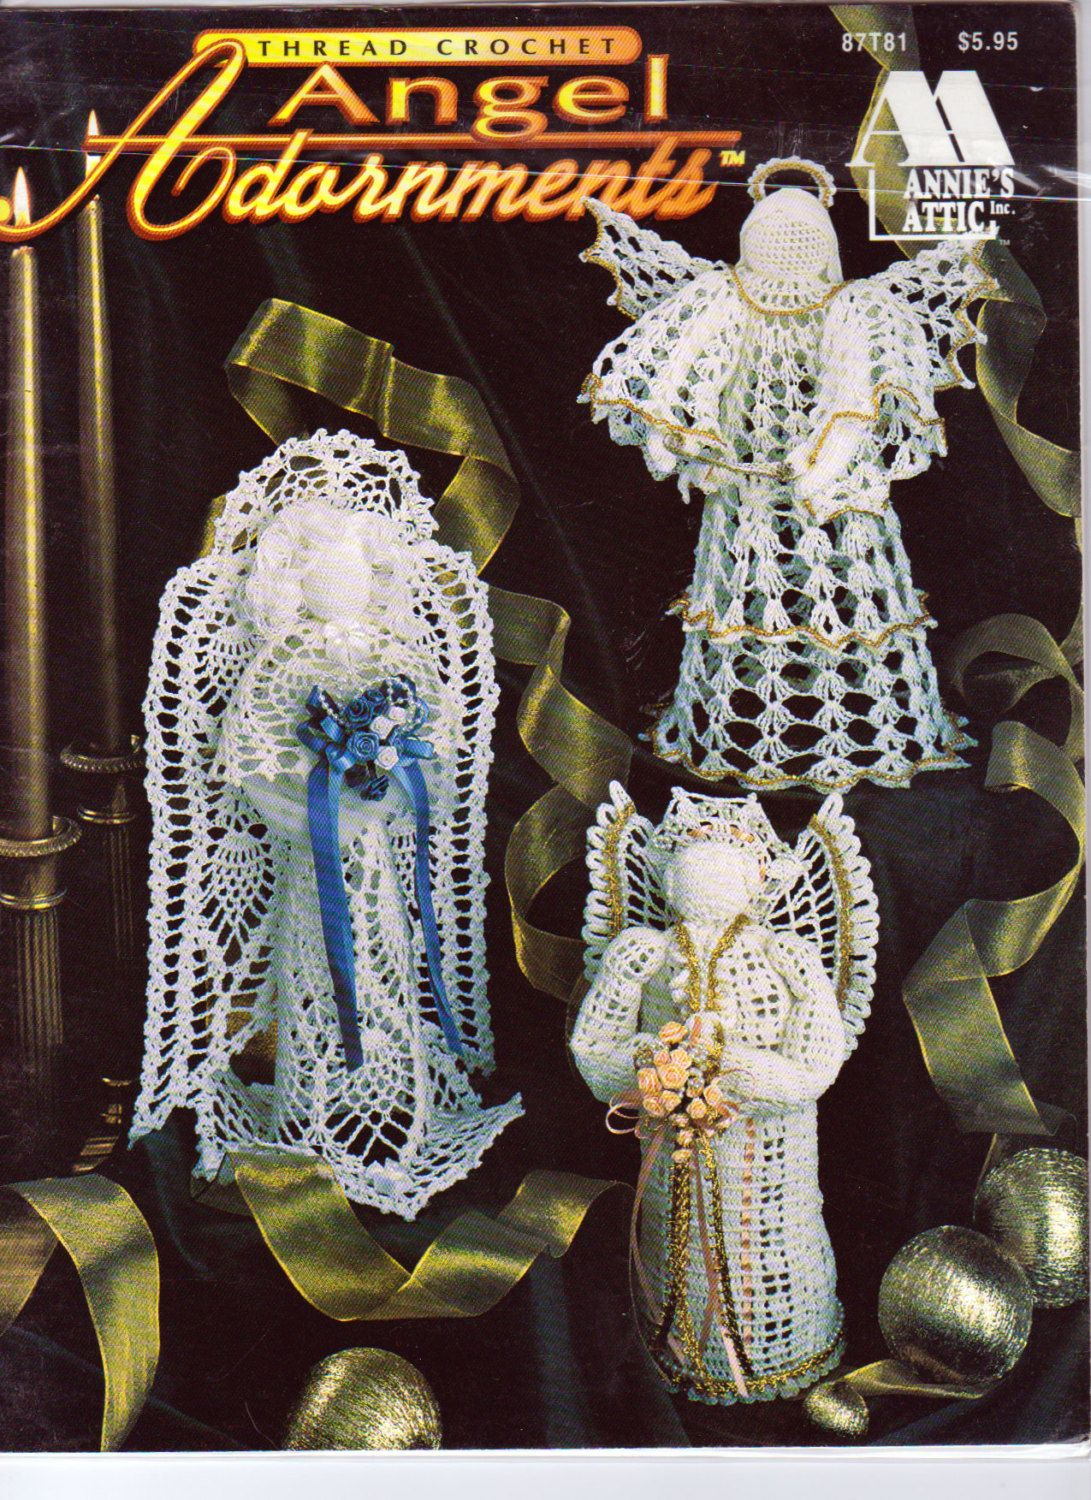 Thread Crochet Angel Adornments, Annies Attic 87T81, Crochet Angel Patterns  by OnceUponAnHeirloom on Etsy